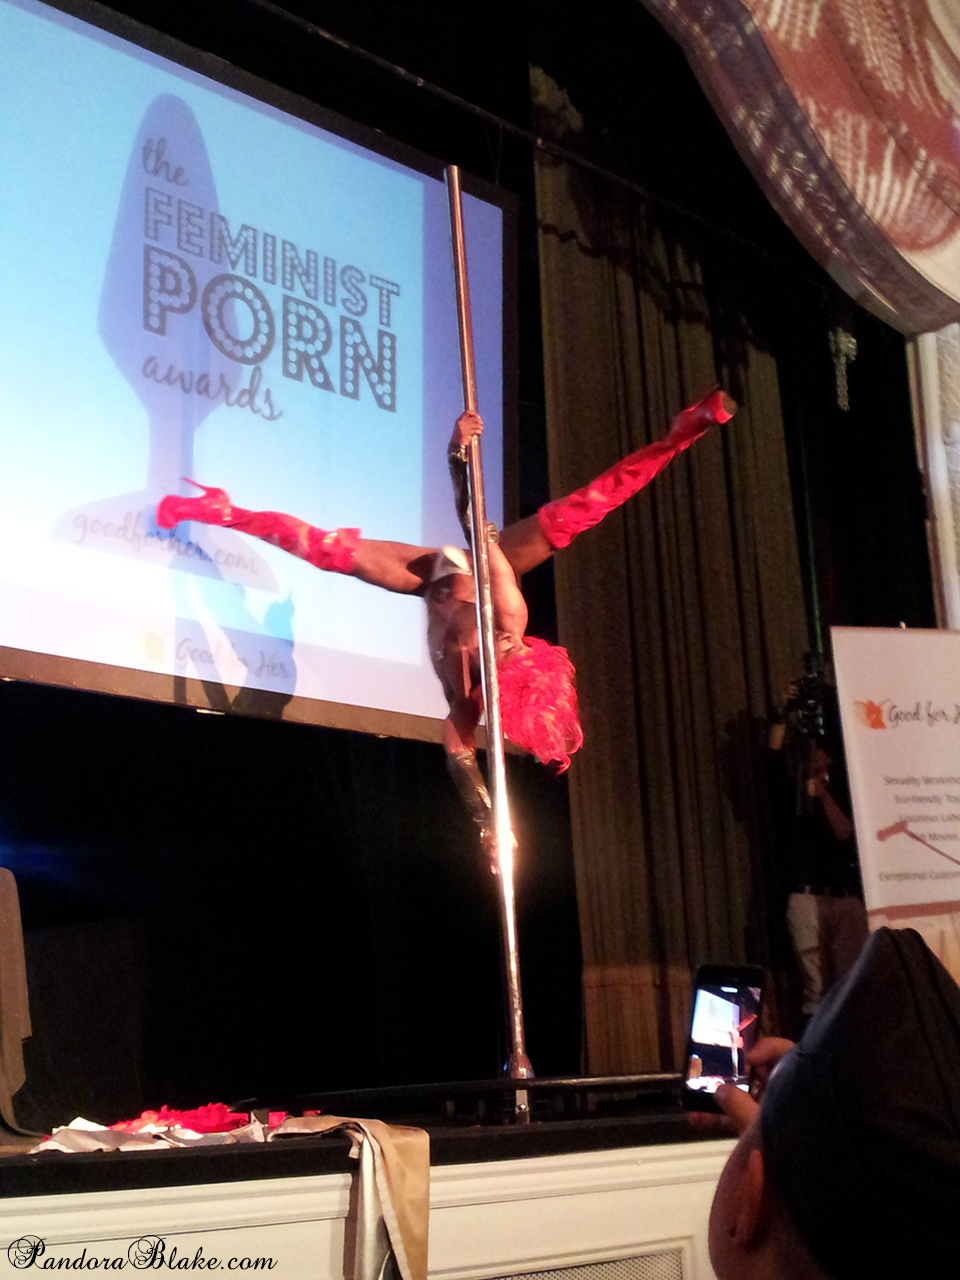 Male poledancer at the Feminist Porn Awards - photo by Pandora Blake